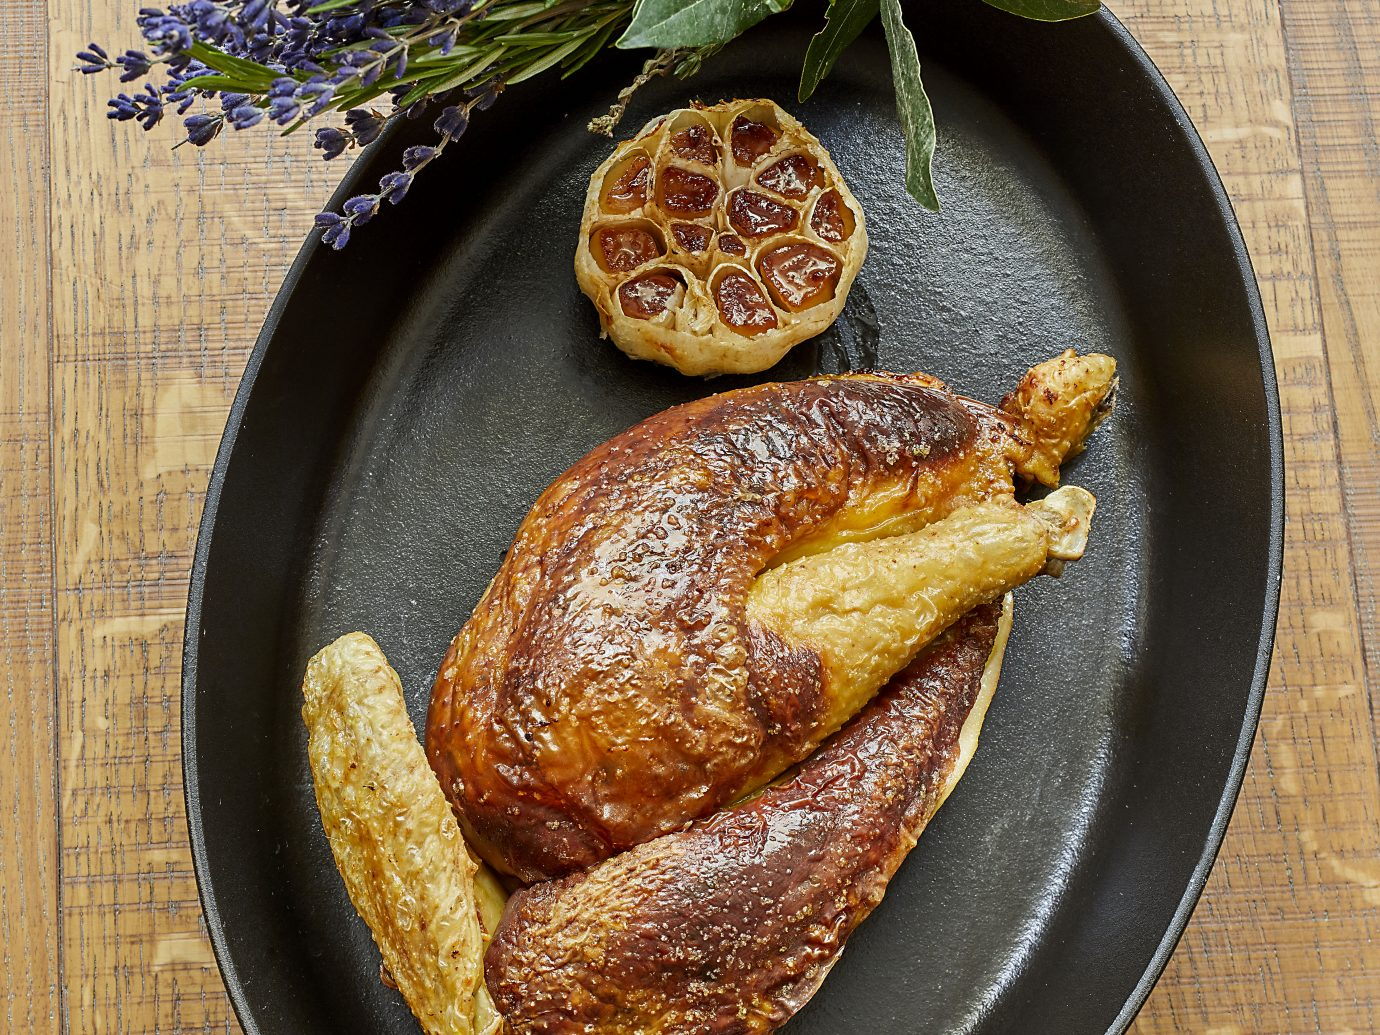 roasted chicken with garnishes